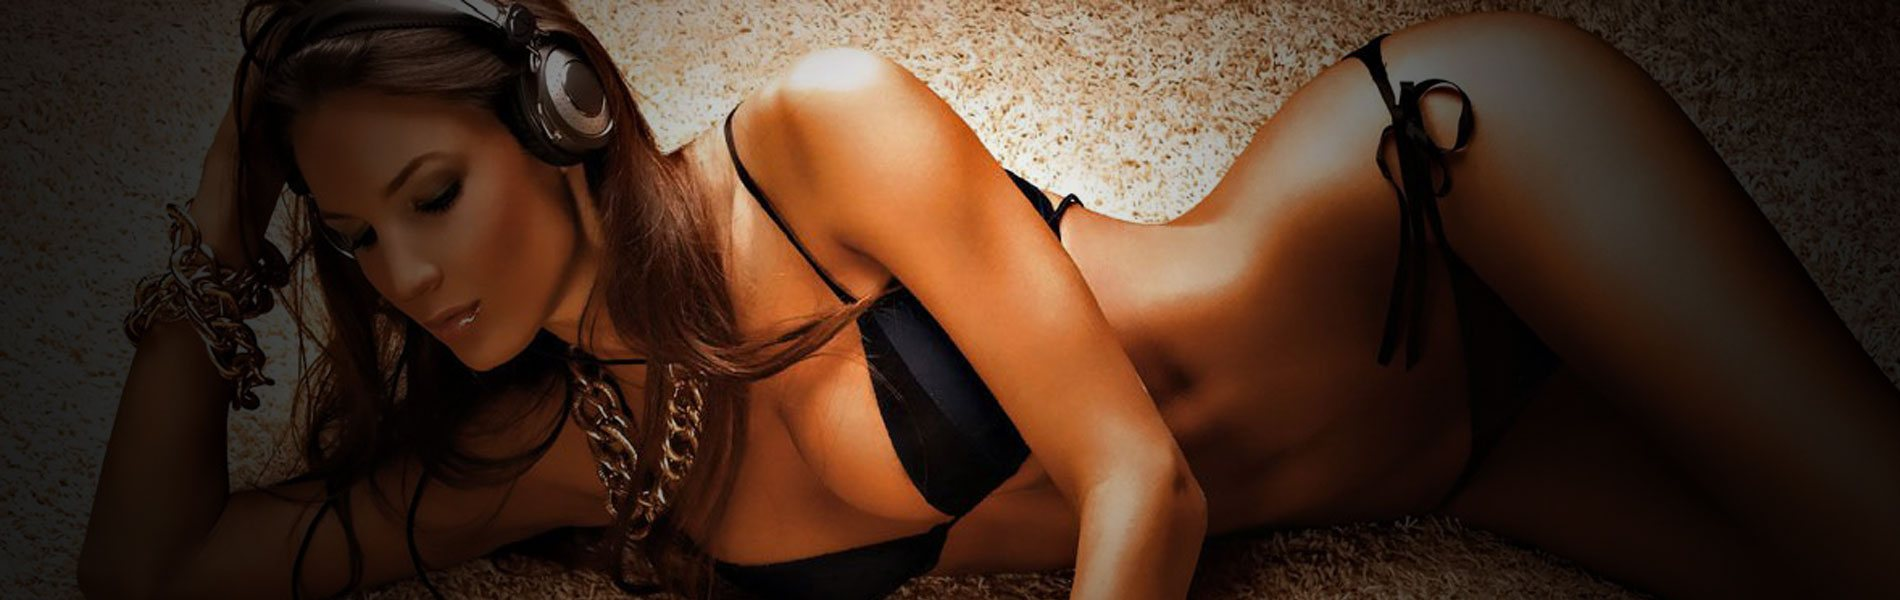 nurugel escort agency for men